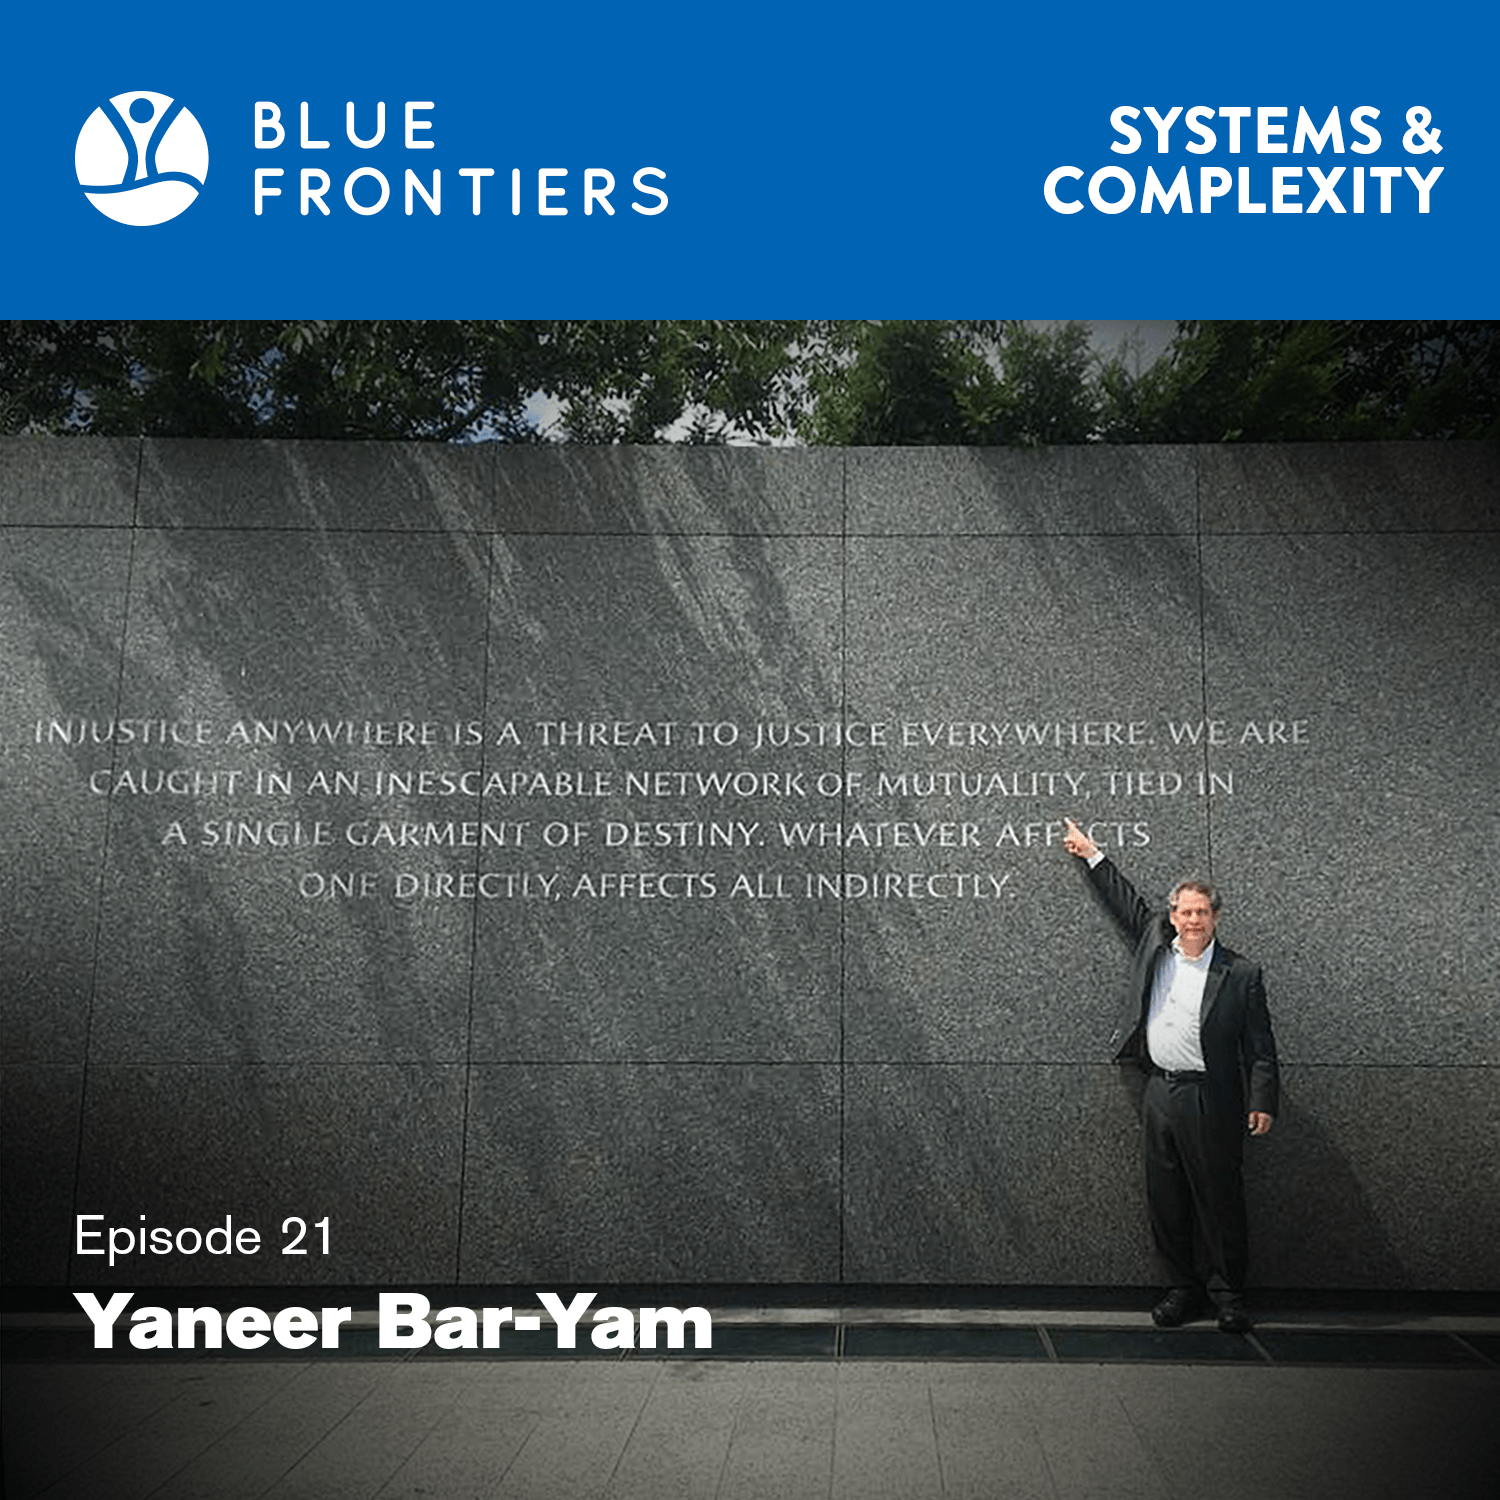 Systems & Complexity: Yaneer Bar-Yam - Episode 21